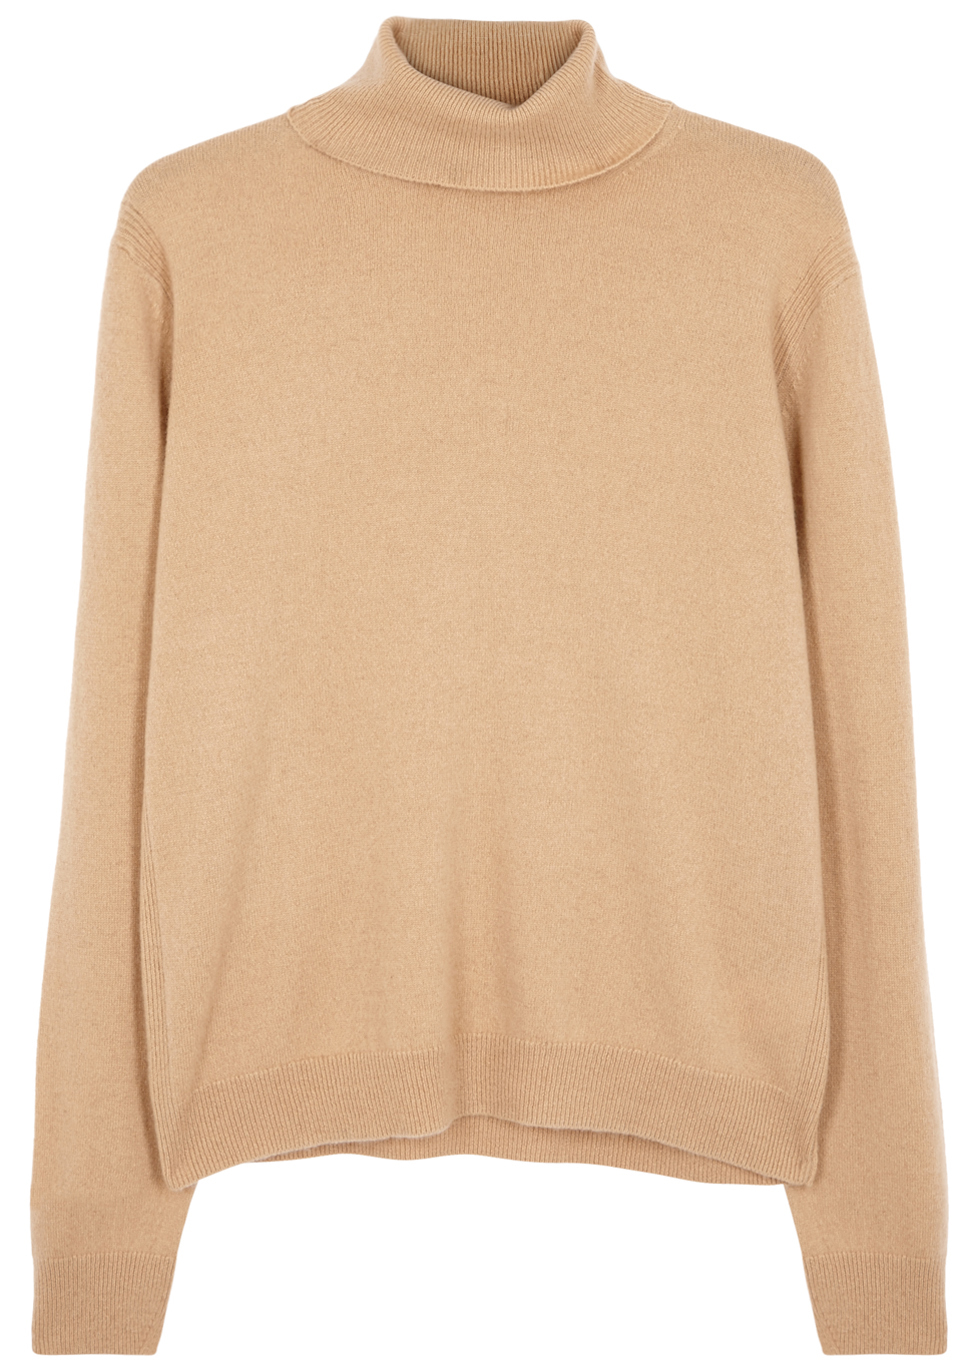 Camel Roll Neck Cashmere Jumper - pattern: plain; neckline: roll neck; style: standard; predominant colour: camel; occasions: casual; length: standard; fit: standard fit; fibres: cashmere - 100%; sleeve length: long sleeve; sleeve style: standard; texture group: knits/crochet; pattern type: knitted - fine stitch; wardrobe: investment; season: a/w 2016